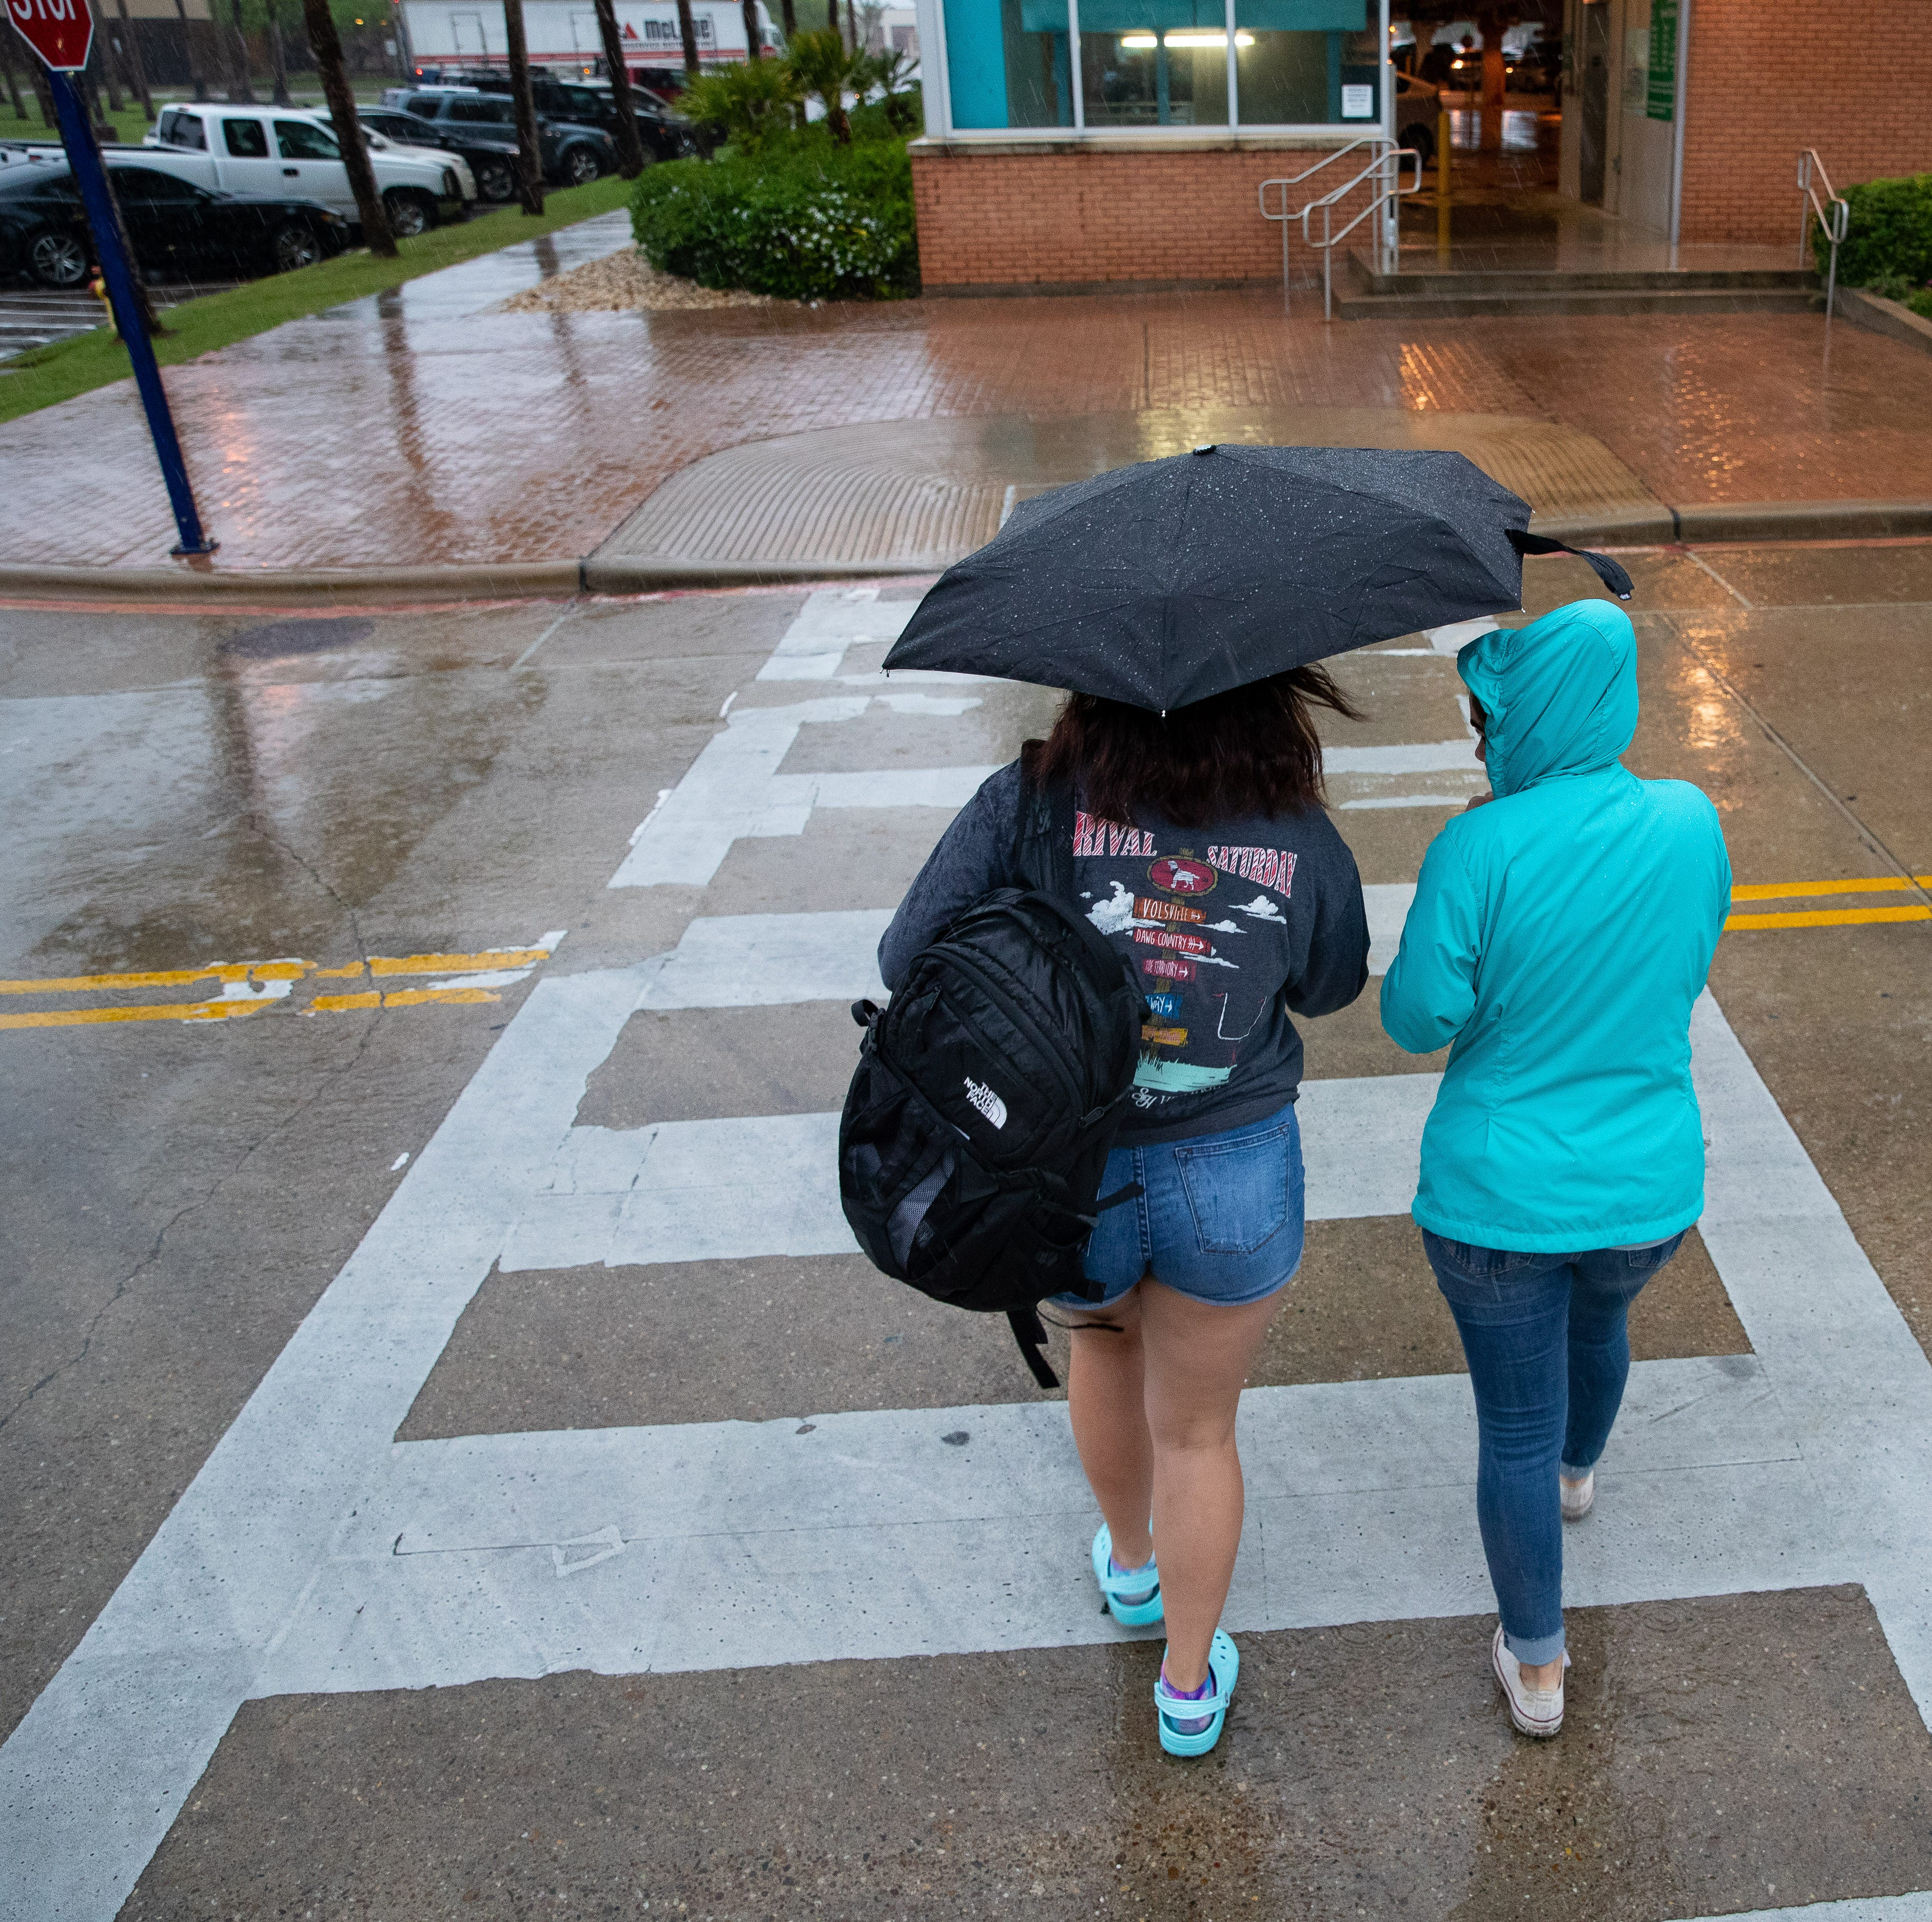 Record lows, more rain expected across the Coastal Bend